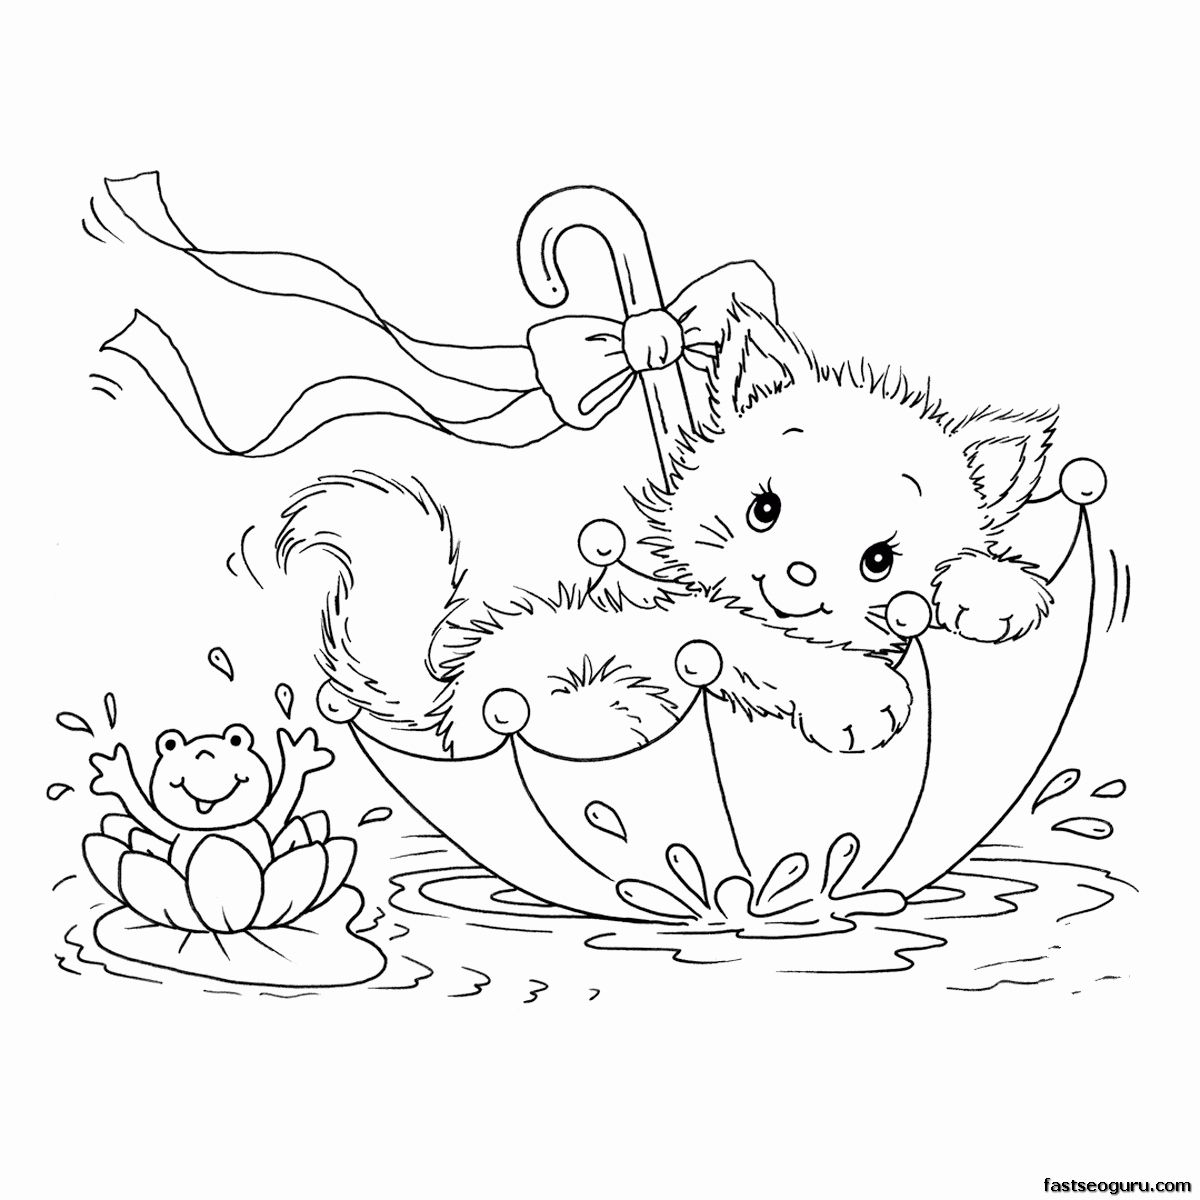 Cute Cats Coloring Pages Luxury Free Princess Cat Coloring Page Download Free Clip Art Cat Coloring Page Animal Coloring Pages Free Coloring Pages